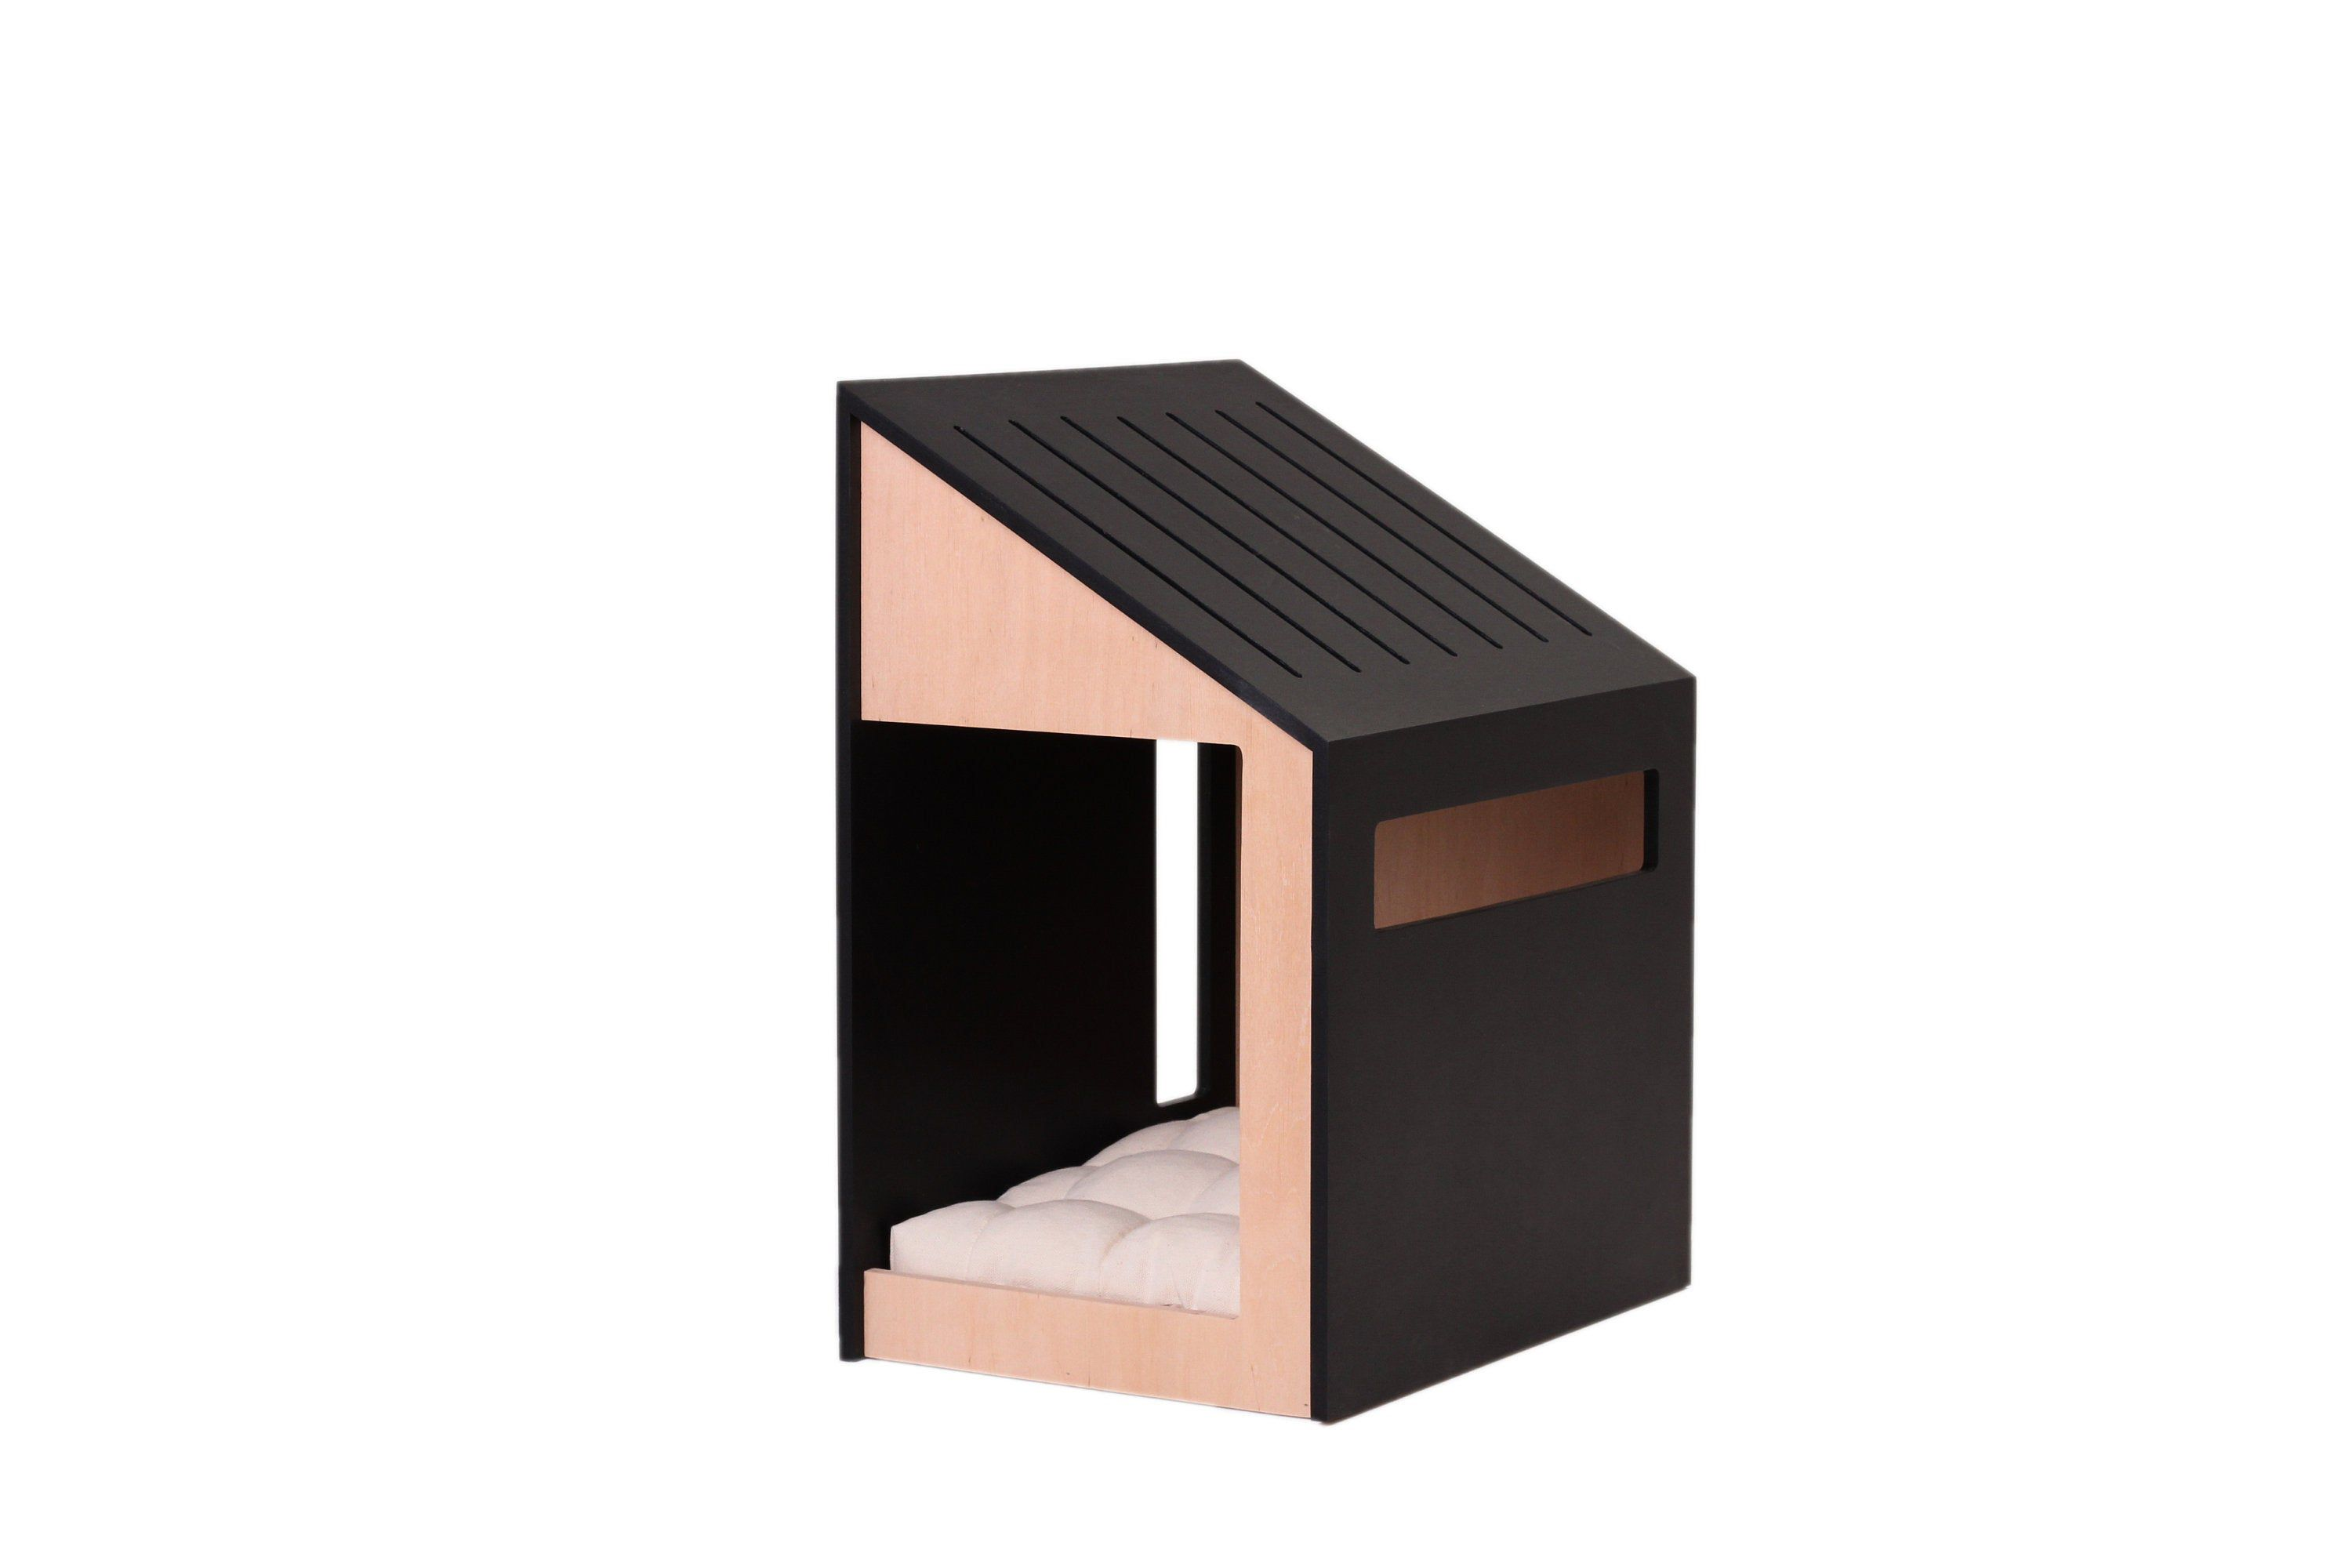 Modern Dog And Cat House Dog Bed Cat Bed Wooden Pet Etsy In 2021 Dog Houses Modern Dog Animal House